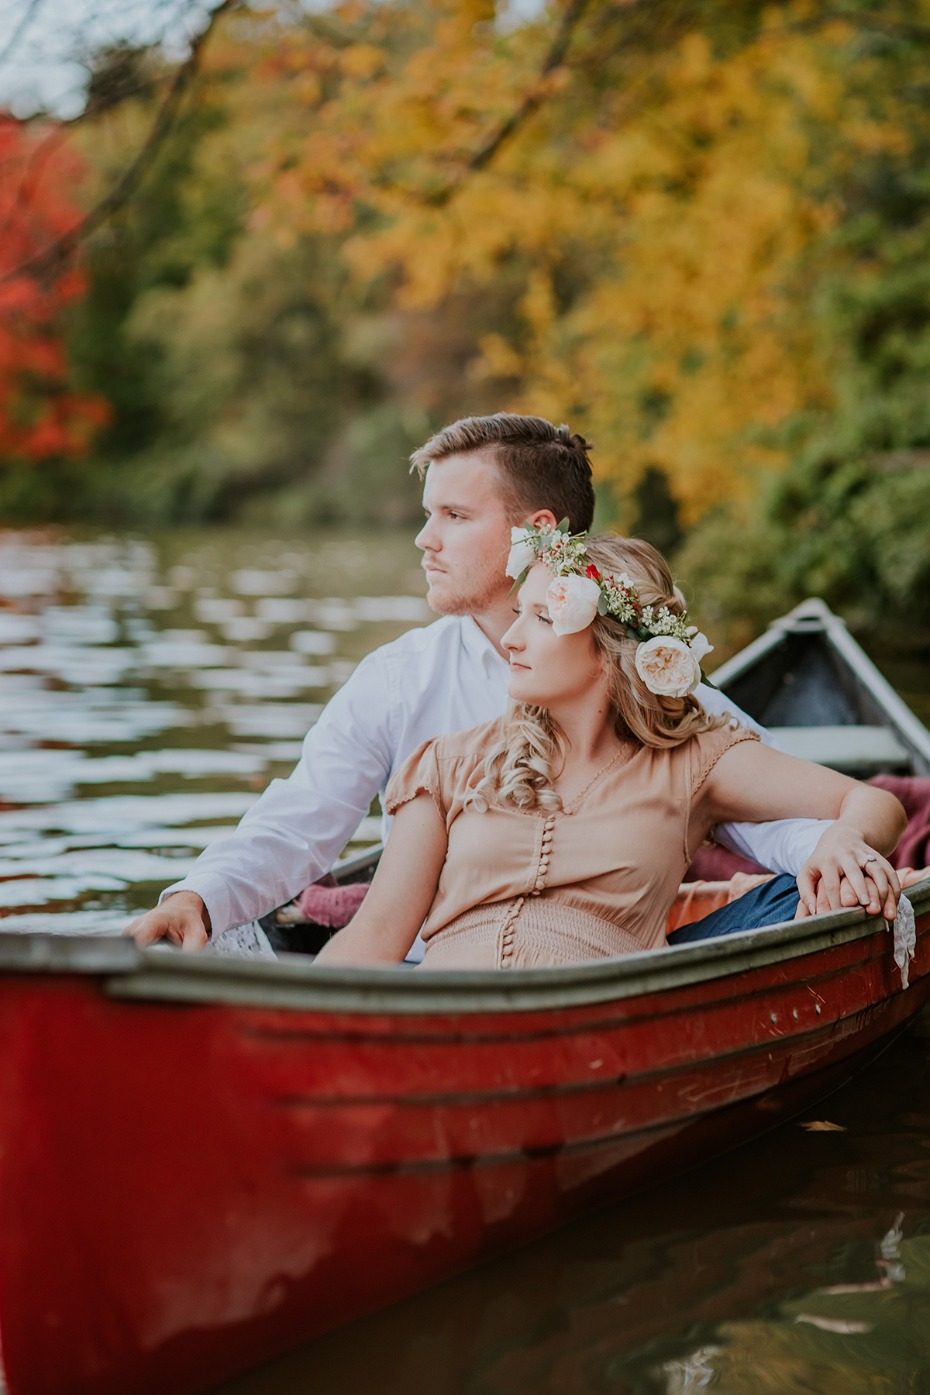 Falling in love in a canoe